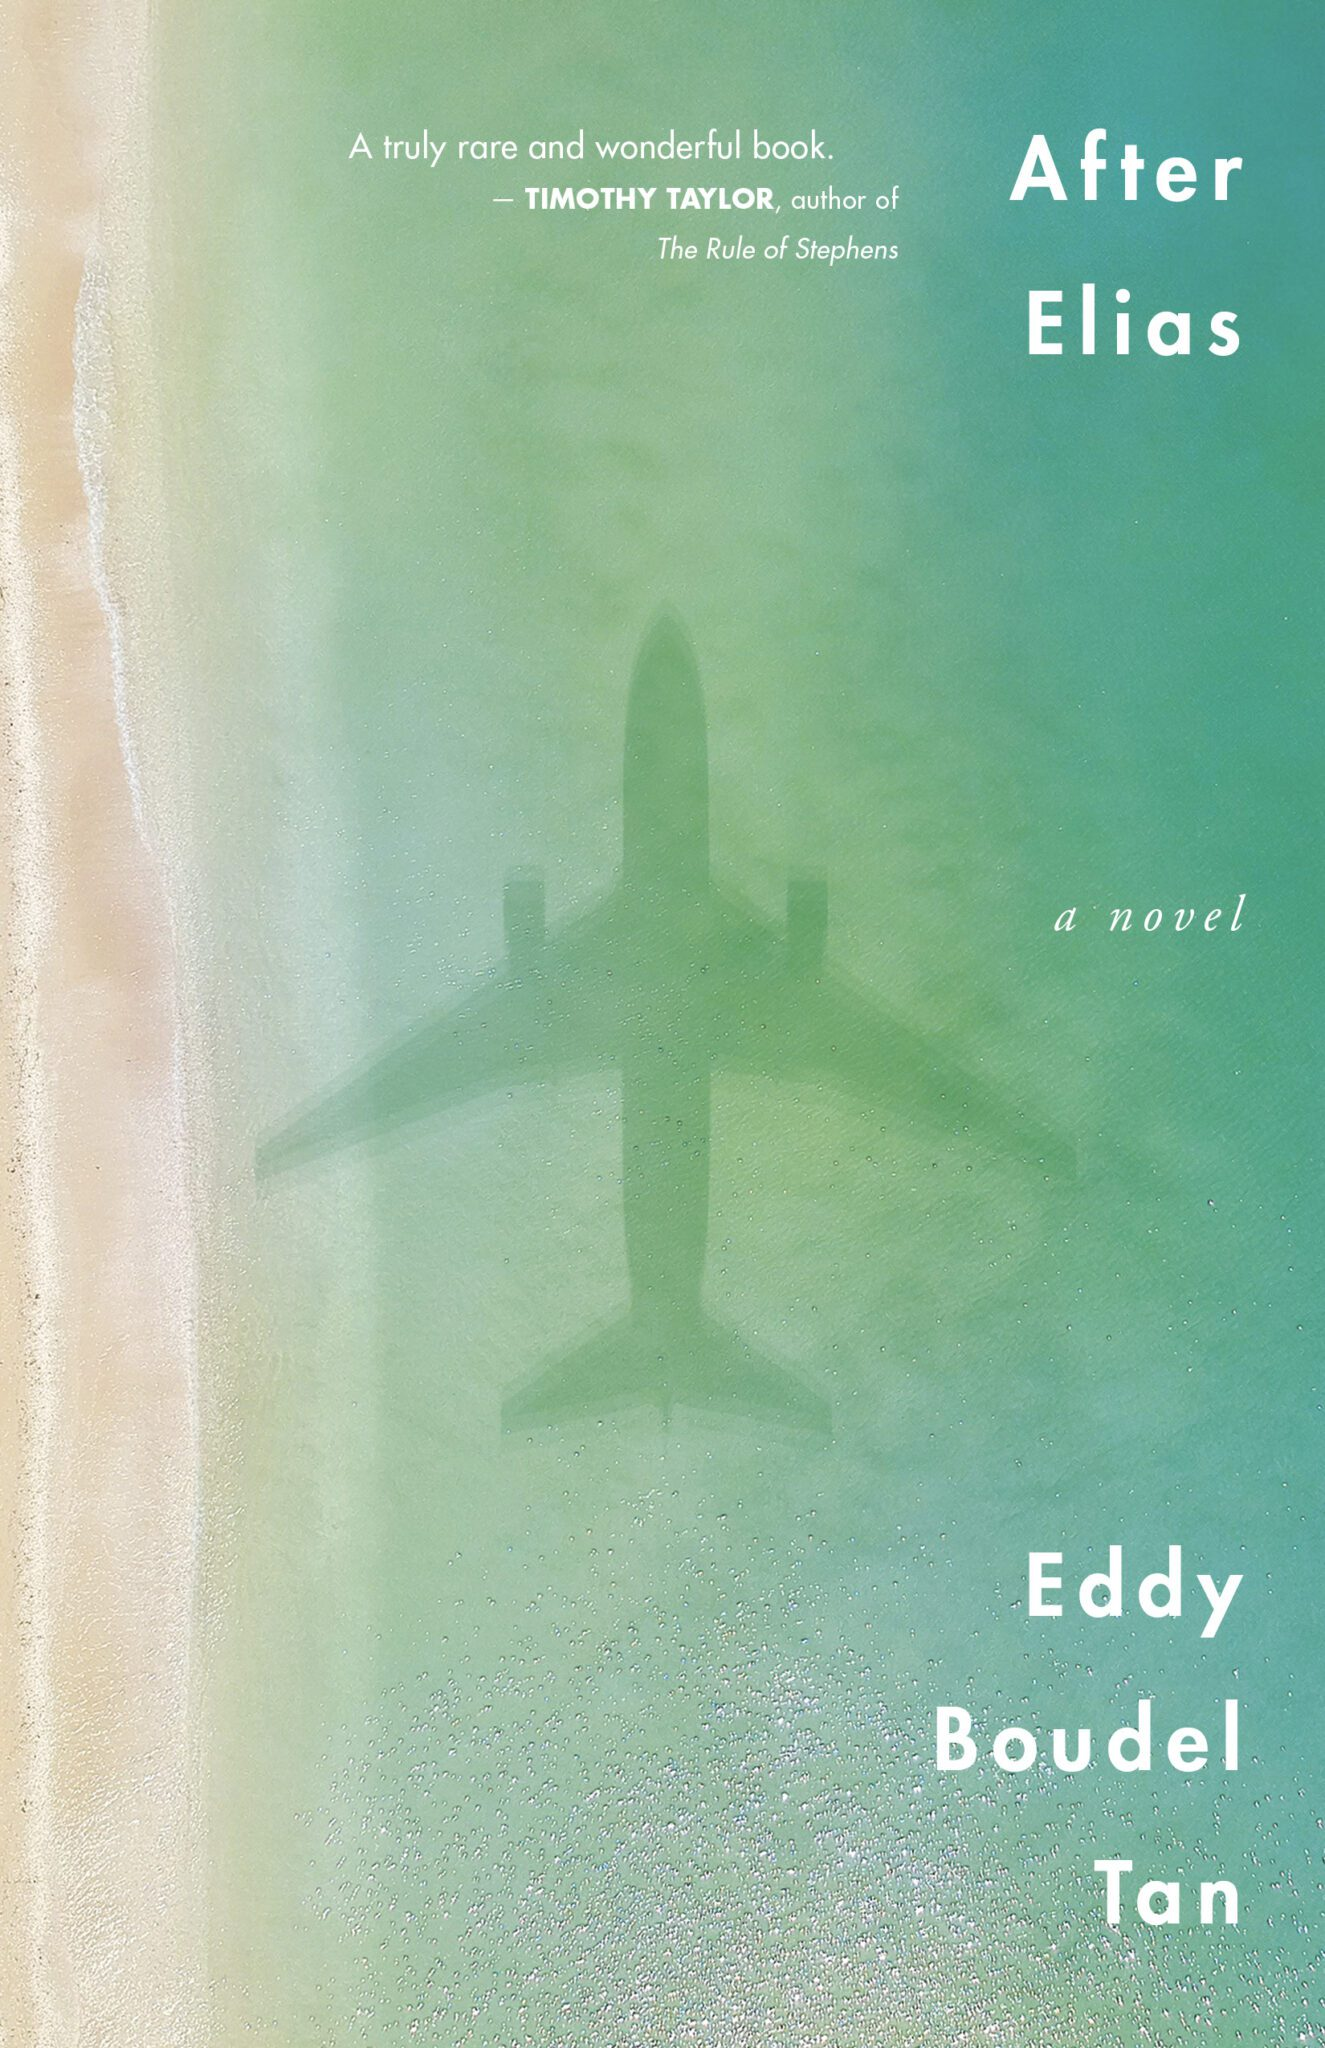 Eddy Boudel Tan: Five Things I Learned Writing After Elias